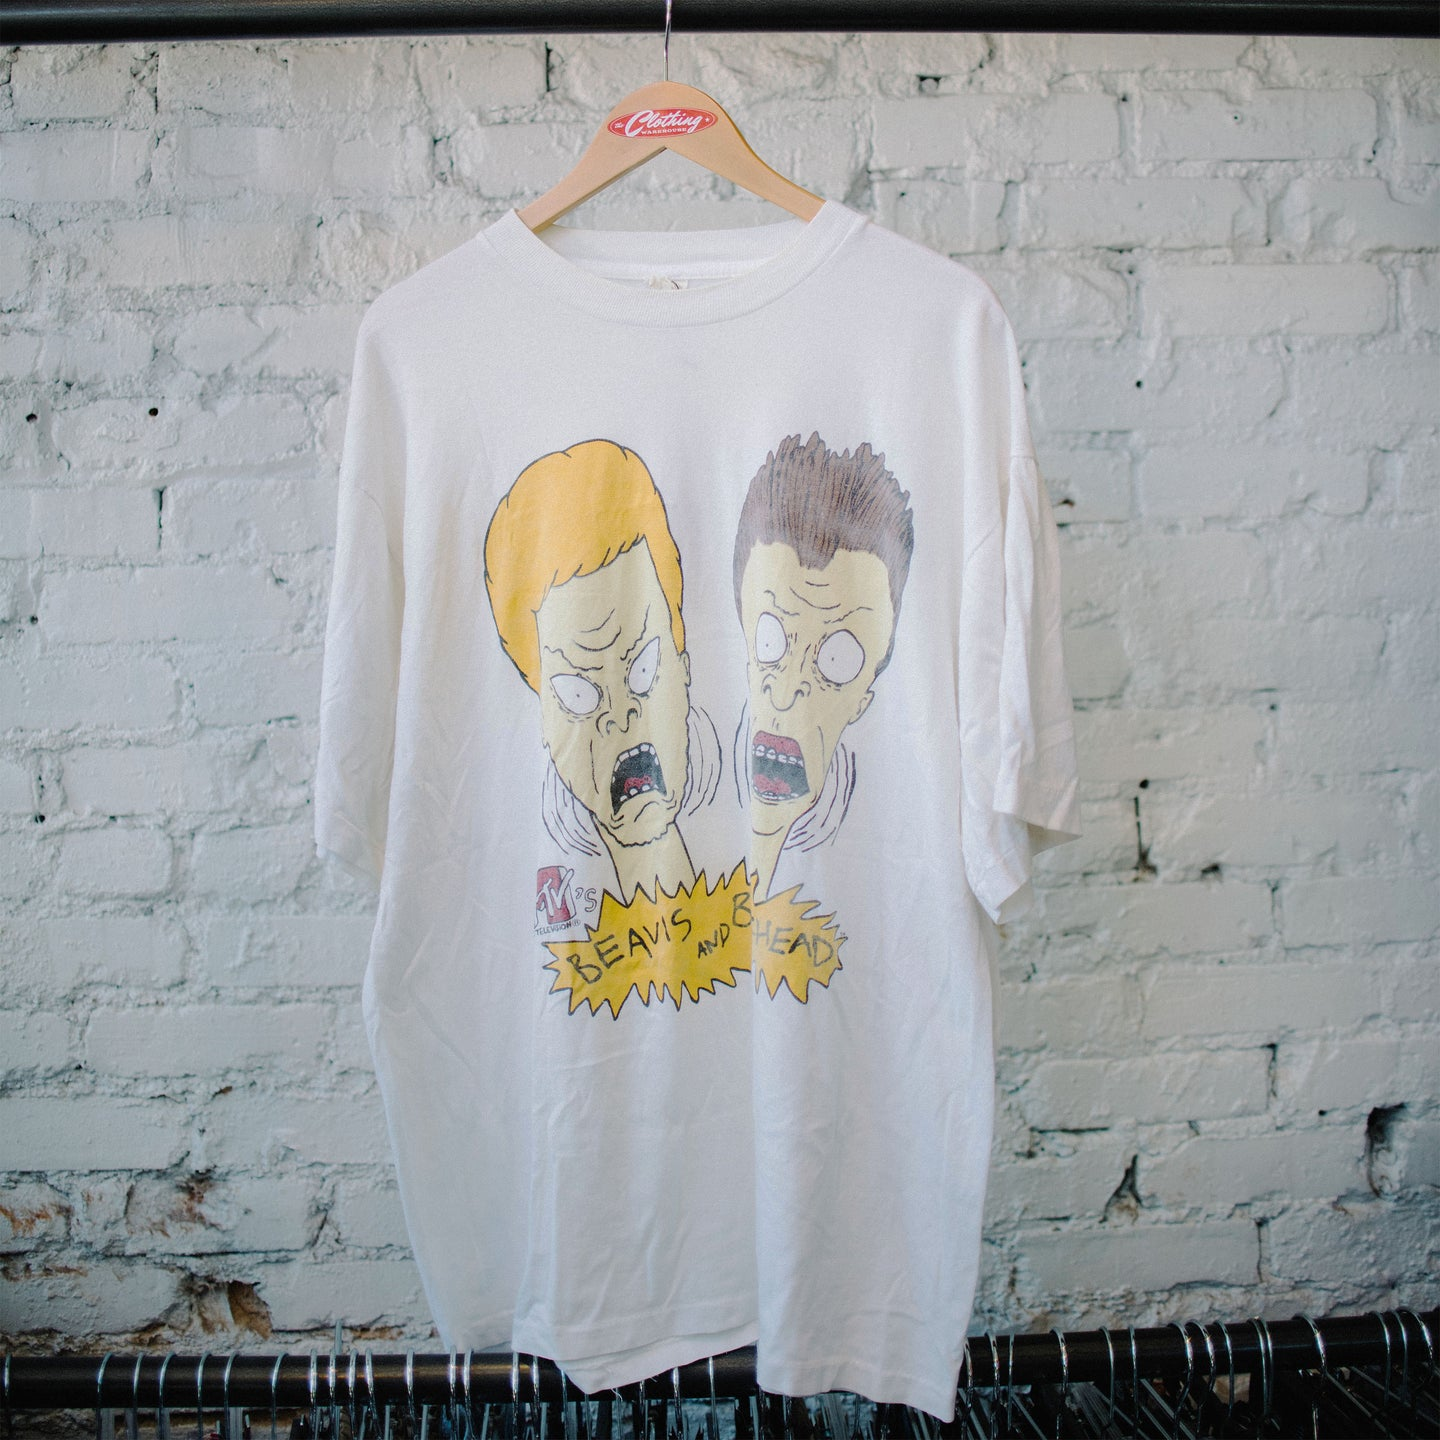 Vintage 90's Beavis and Butthead MTV Tee